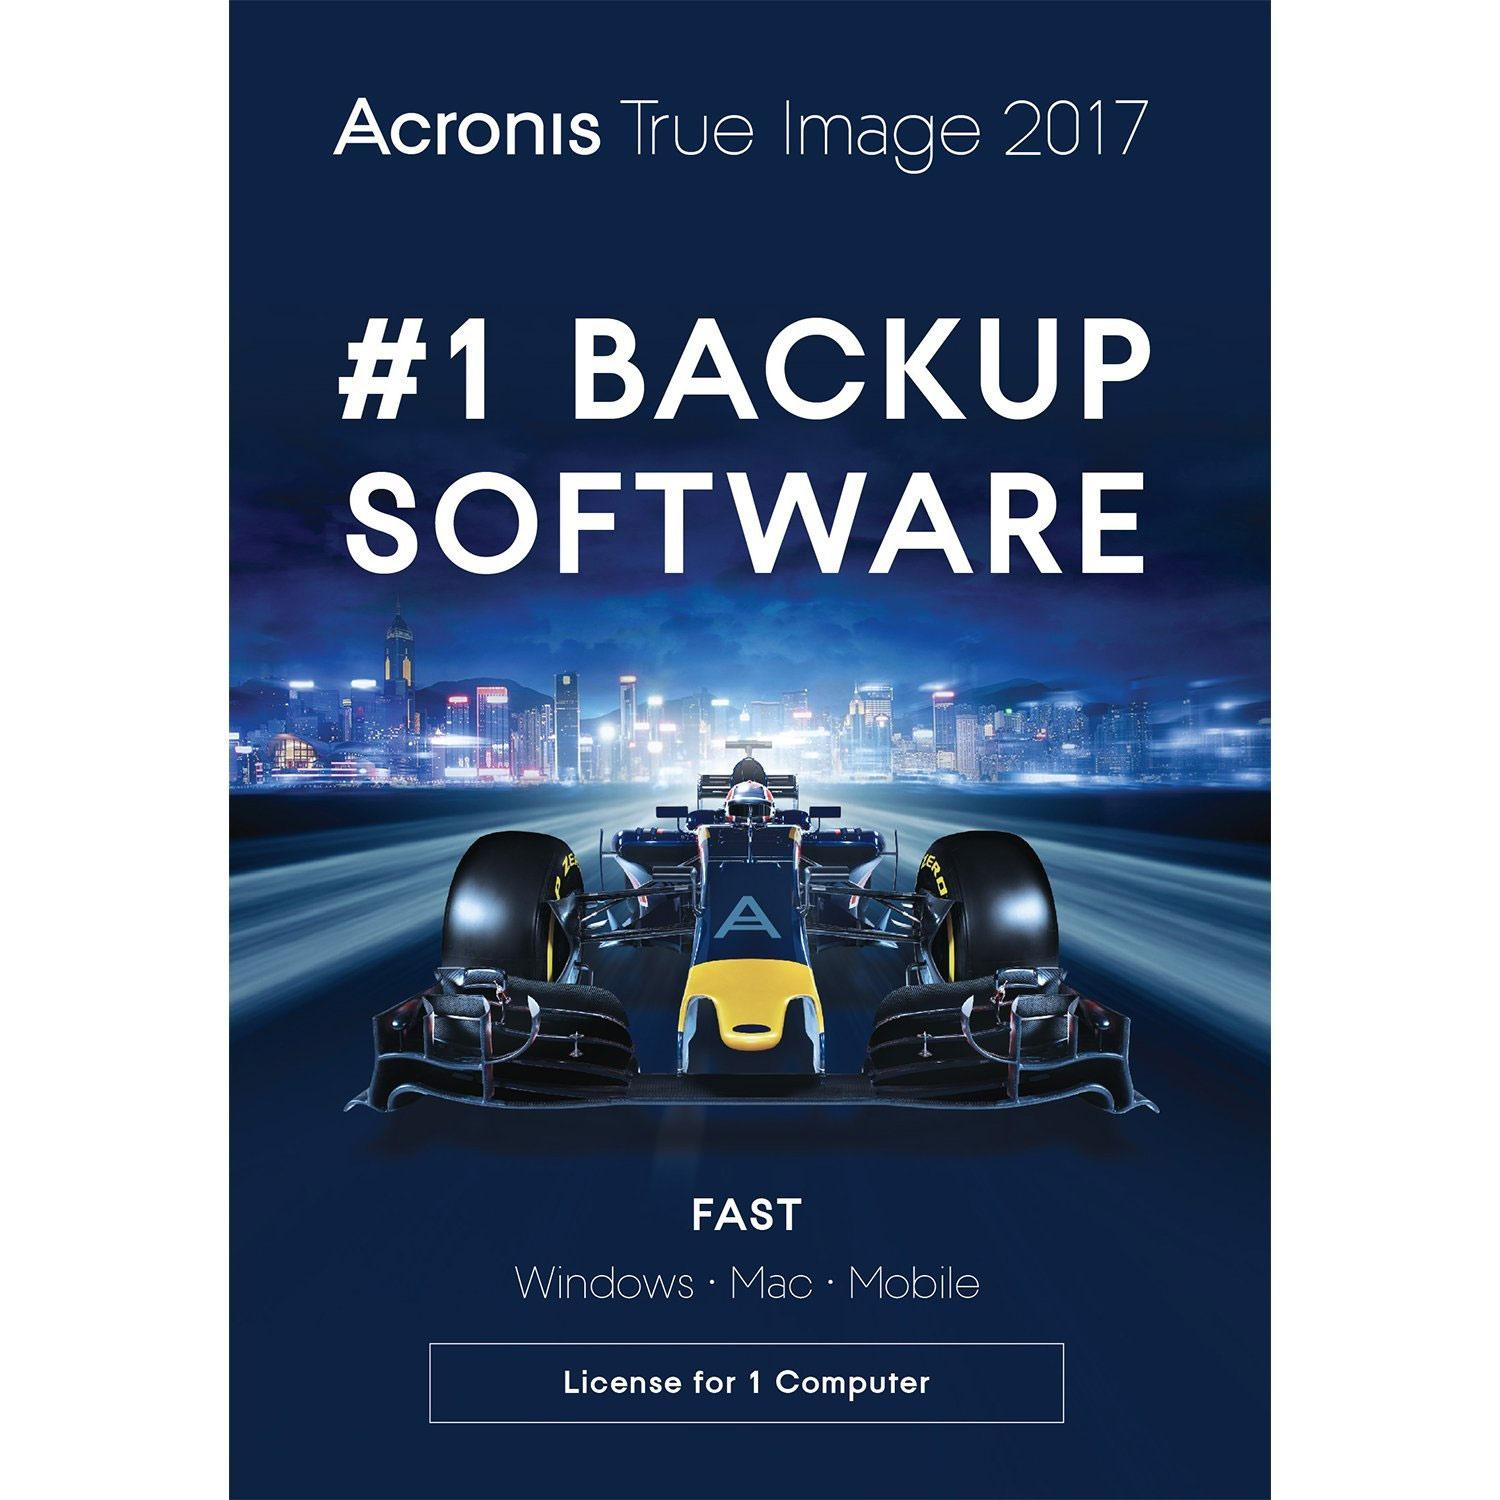 Acronis TIHXB2UKS True Image 2017 License - 1 Computer